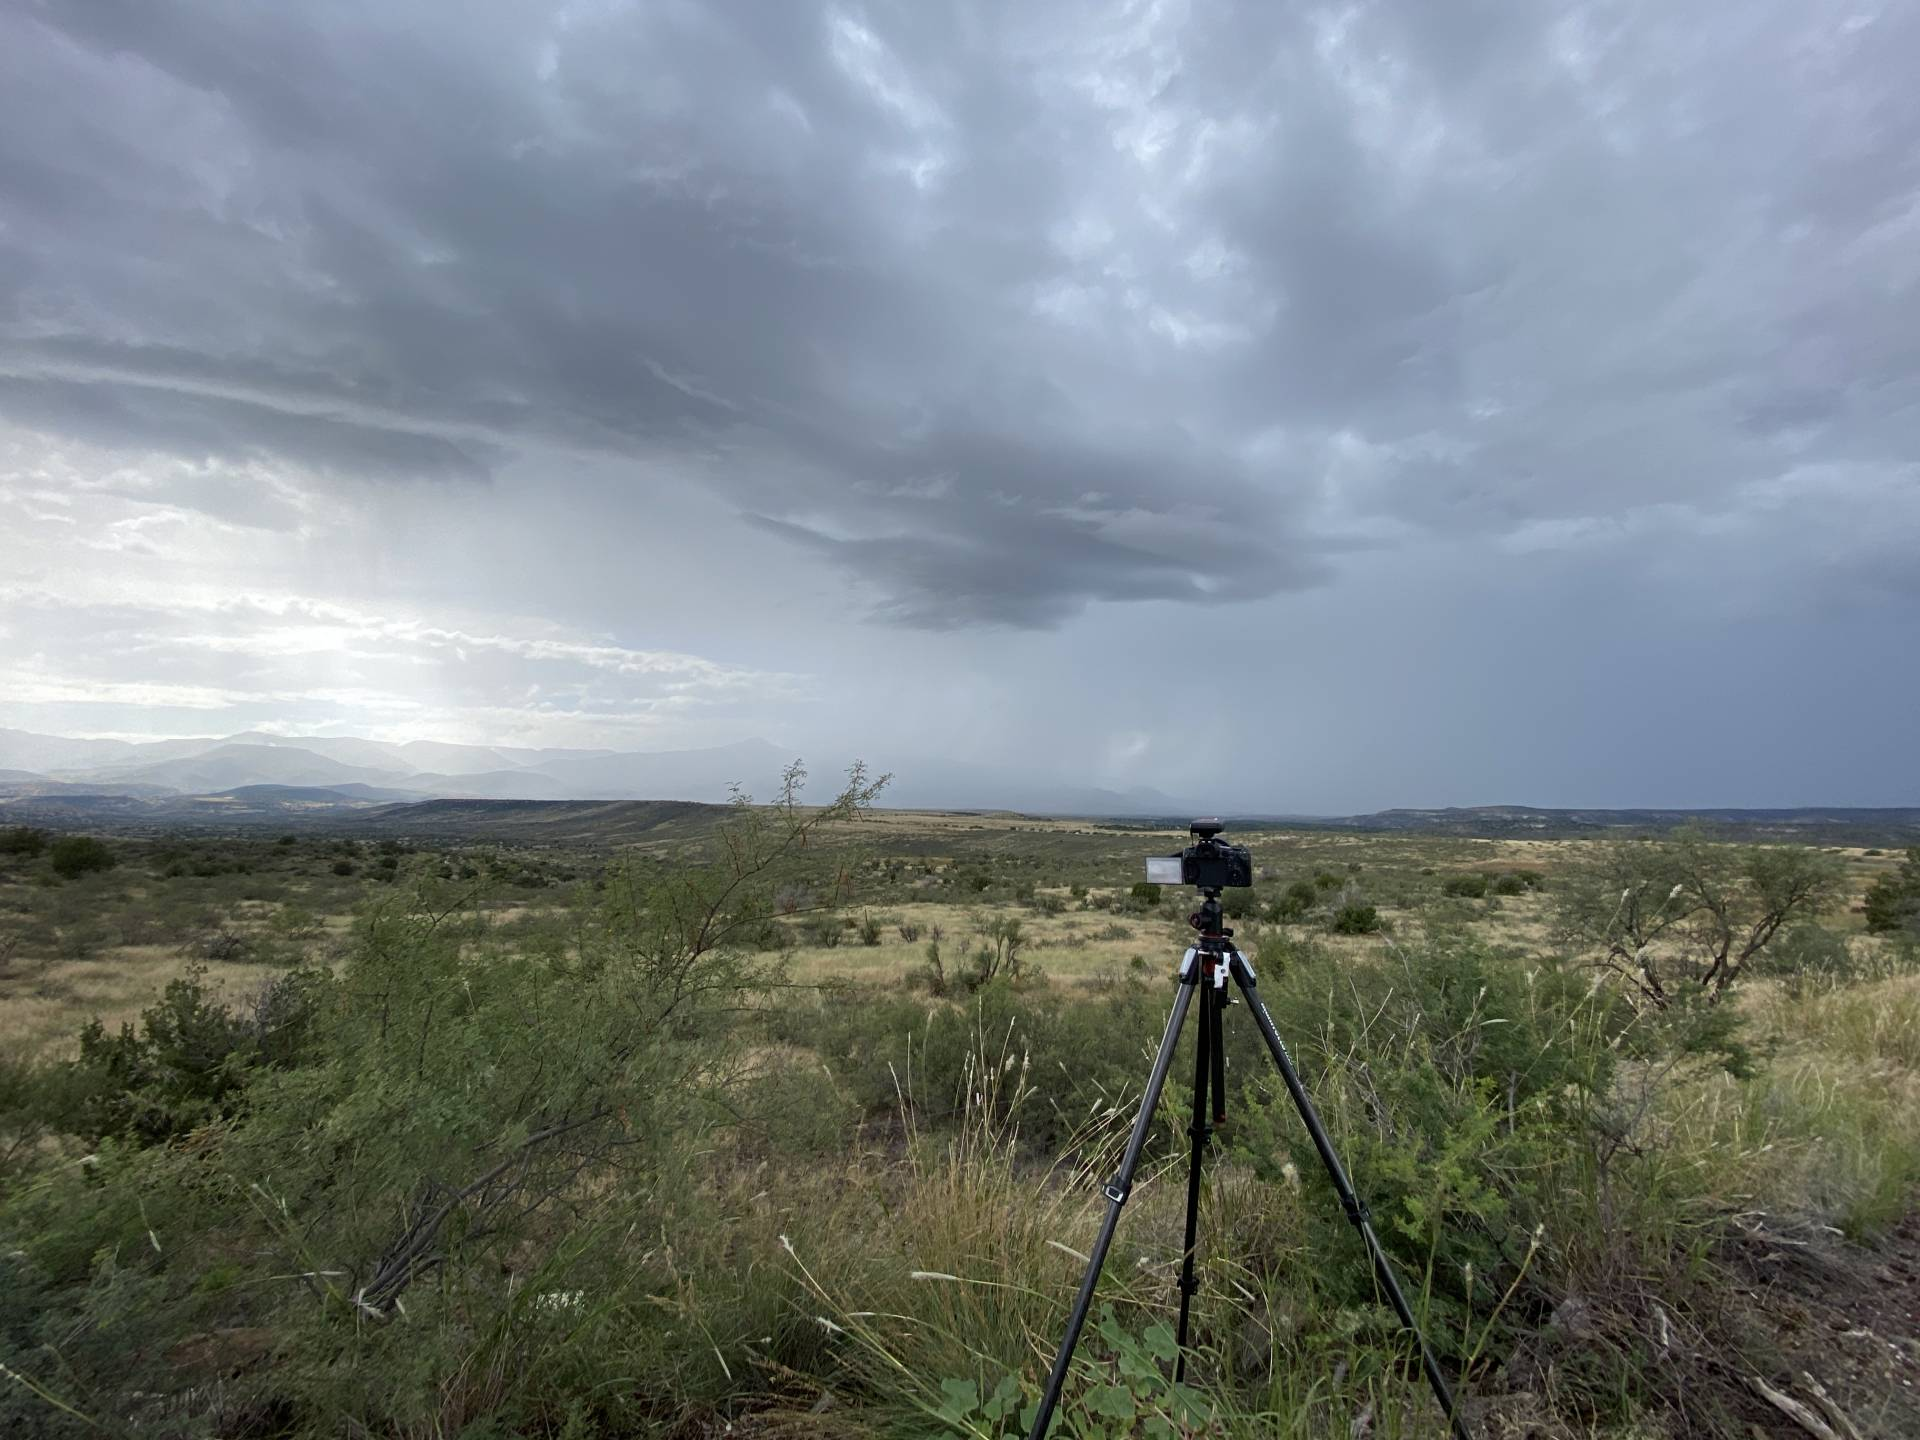 Firing over Verde Valley earlier than I expected. May not see best parameters taken advantage of in my target area. #azwx